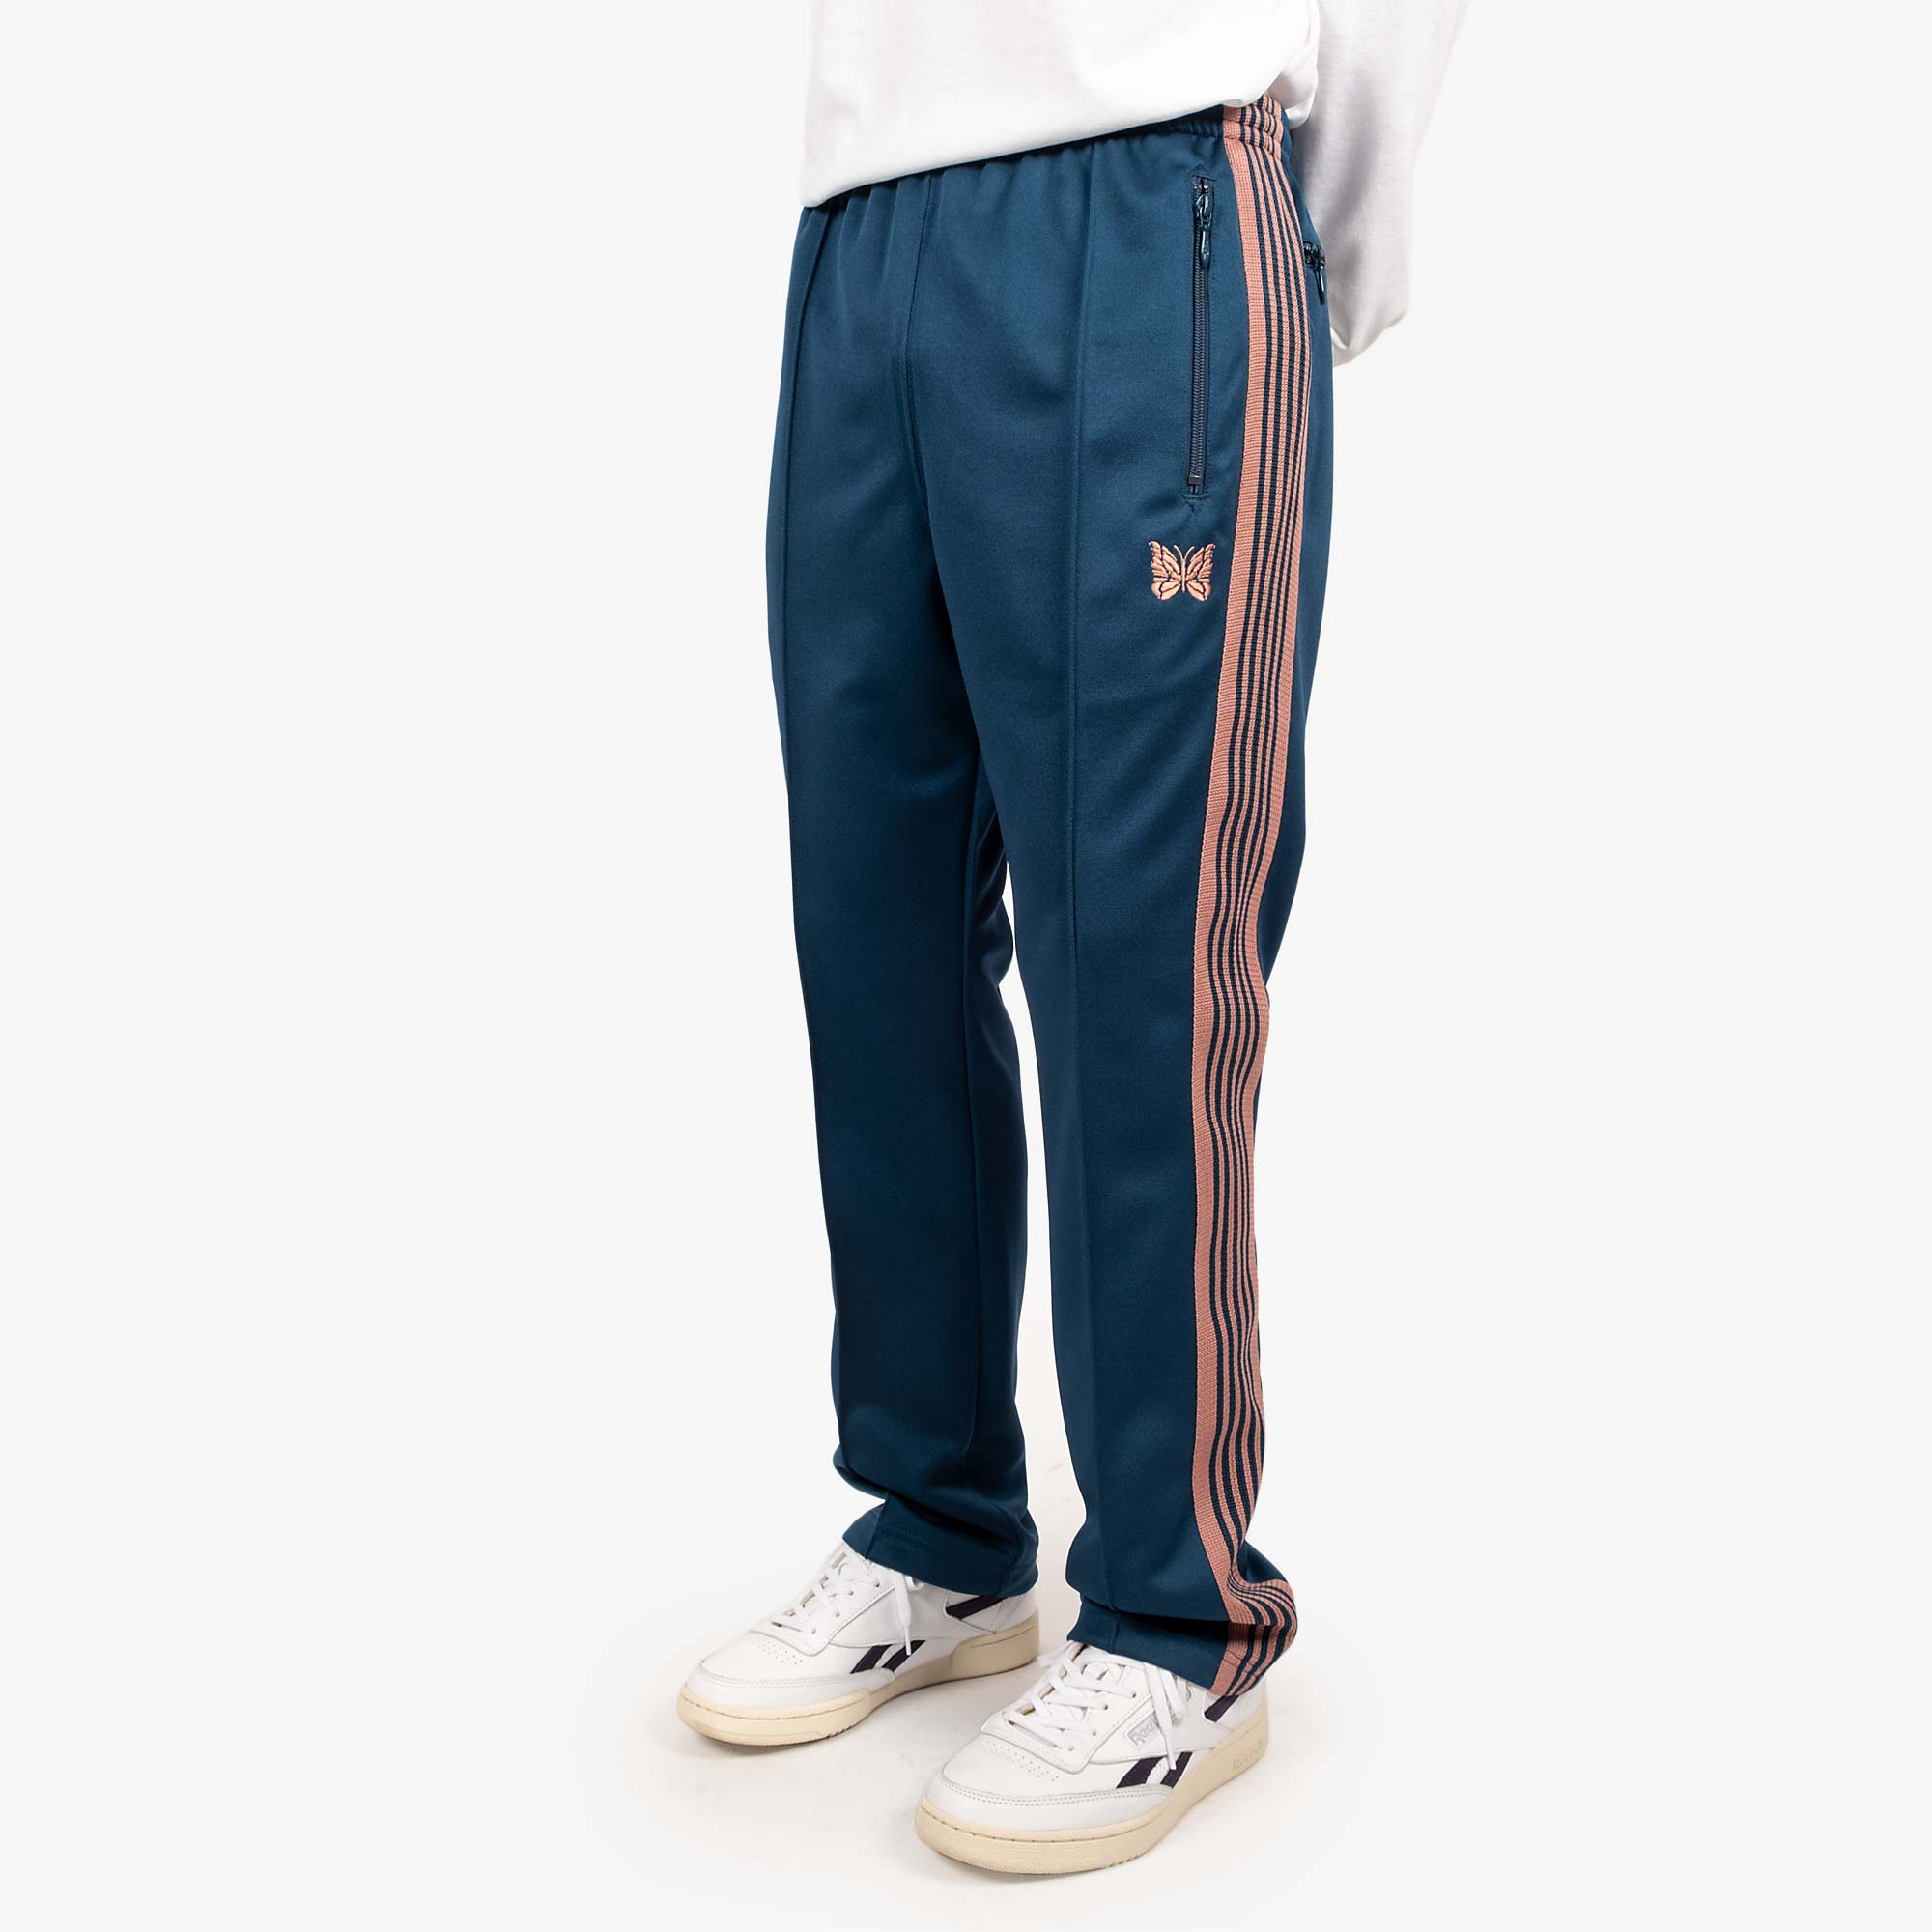 Needles M' Narrow Track Pant - Poly Smooth Teal Green 2